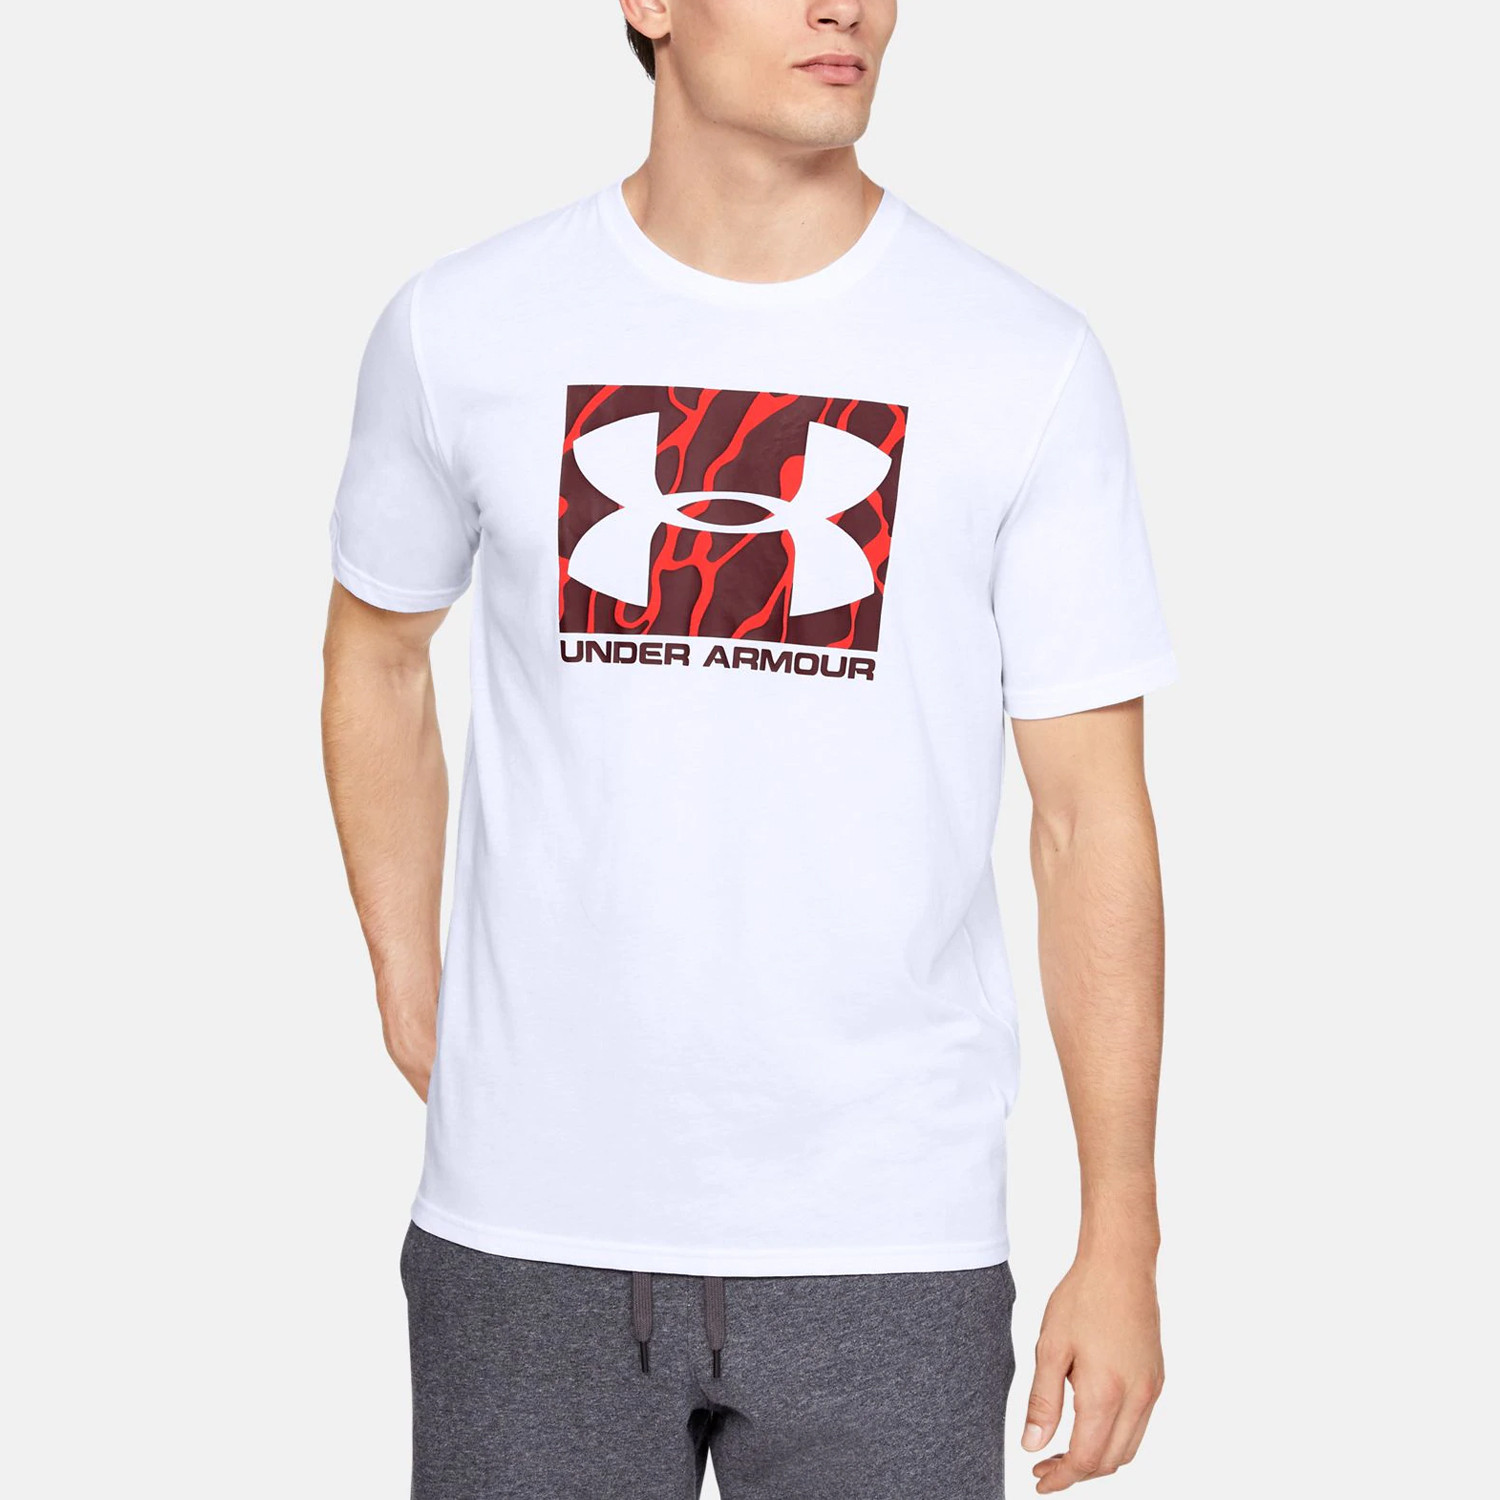 Under Armour Camo Boxed Men's T-Shirt (9000047939_44236)